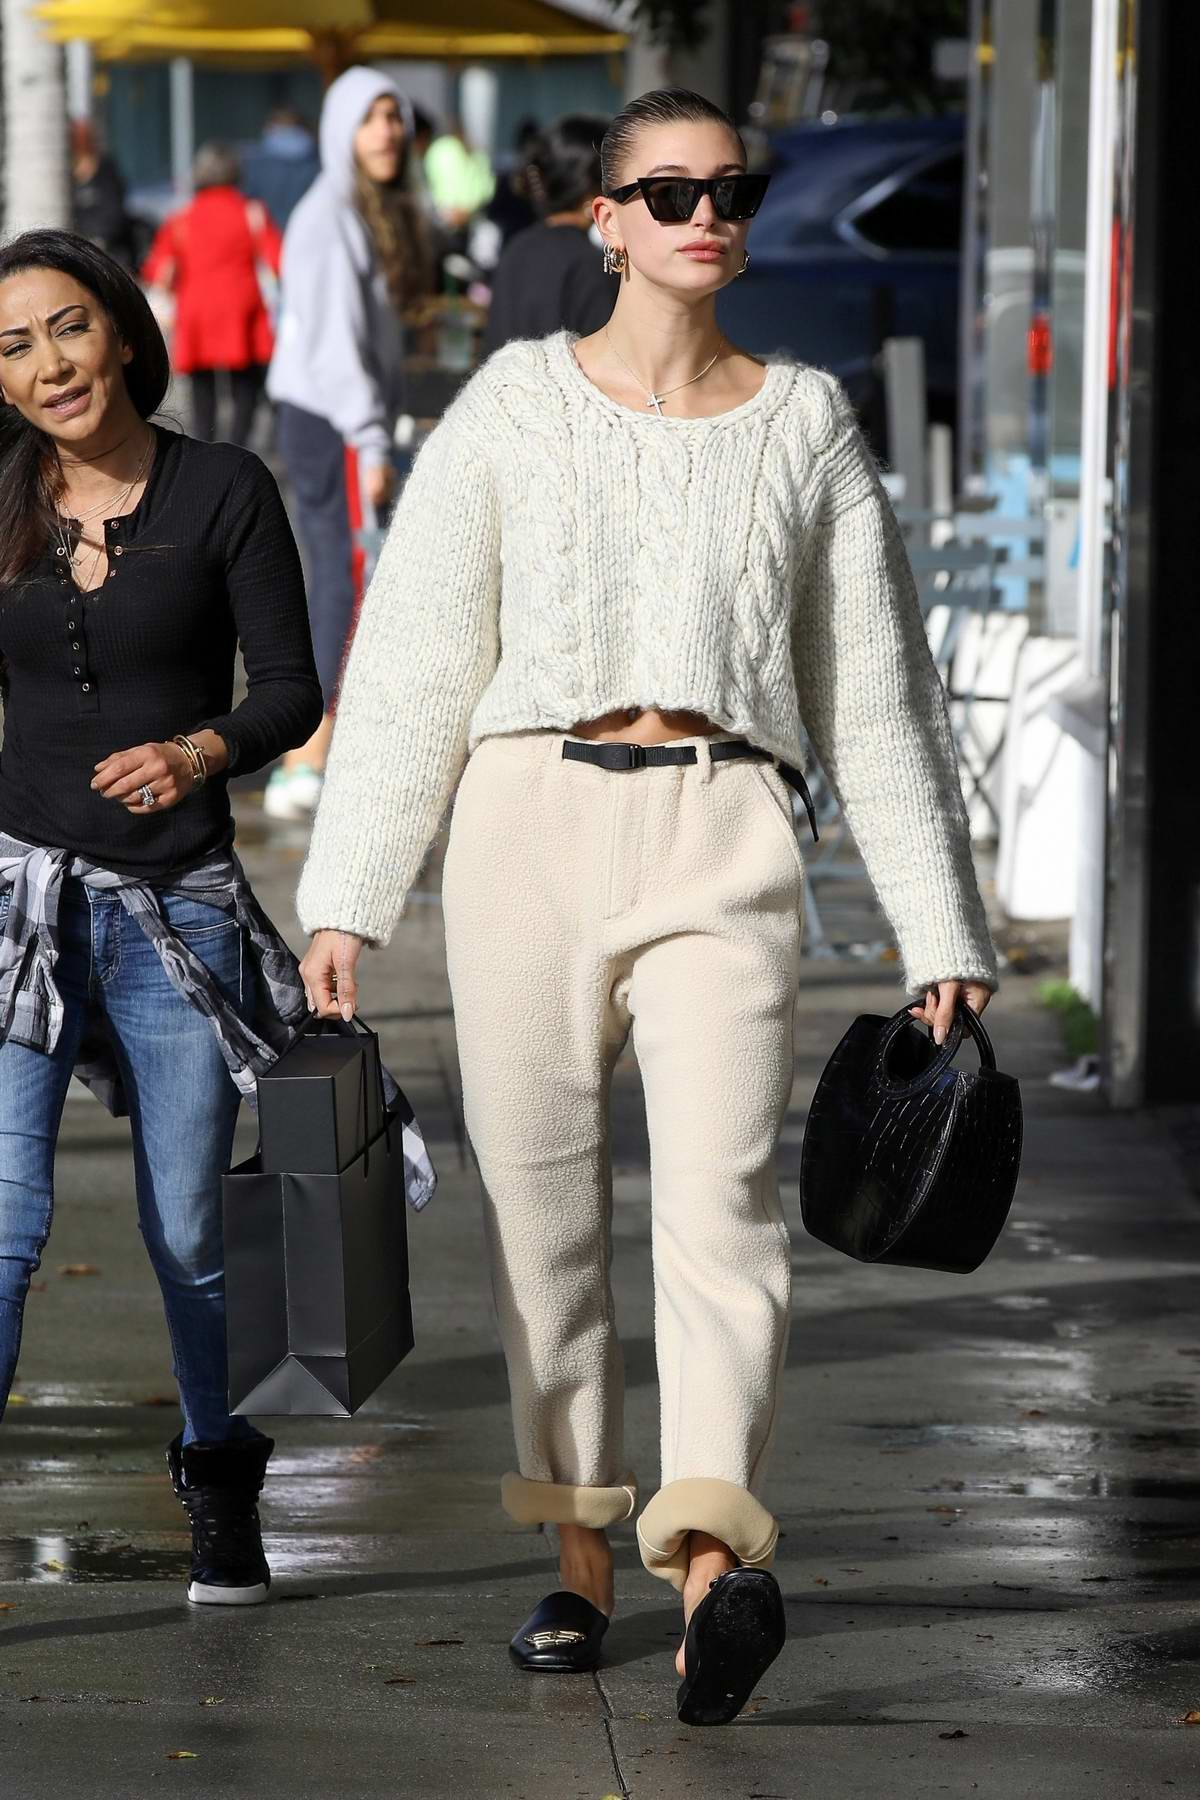 Hailey Bieber shows off a smart casual look while out running errands in Beverly Hills, Los Angeles